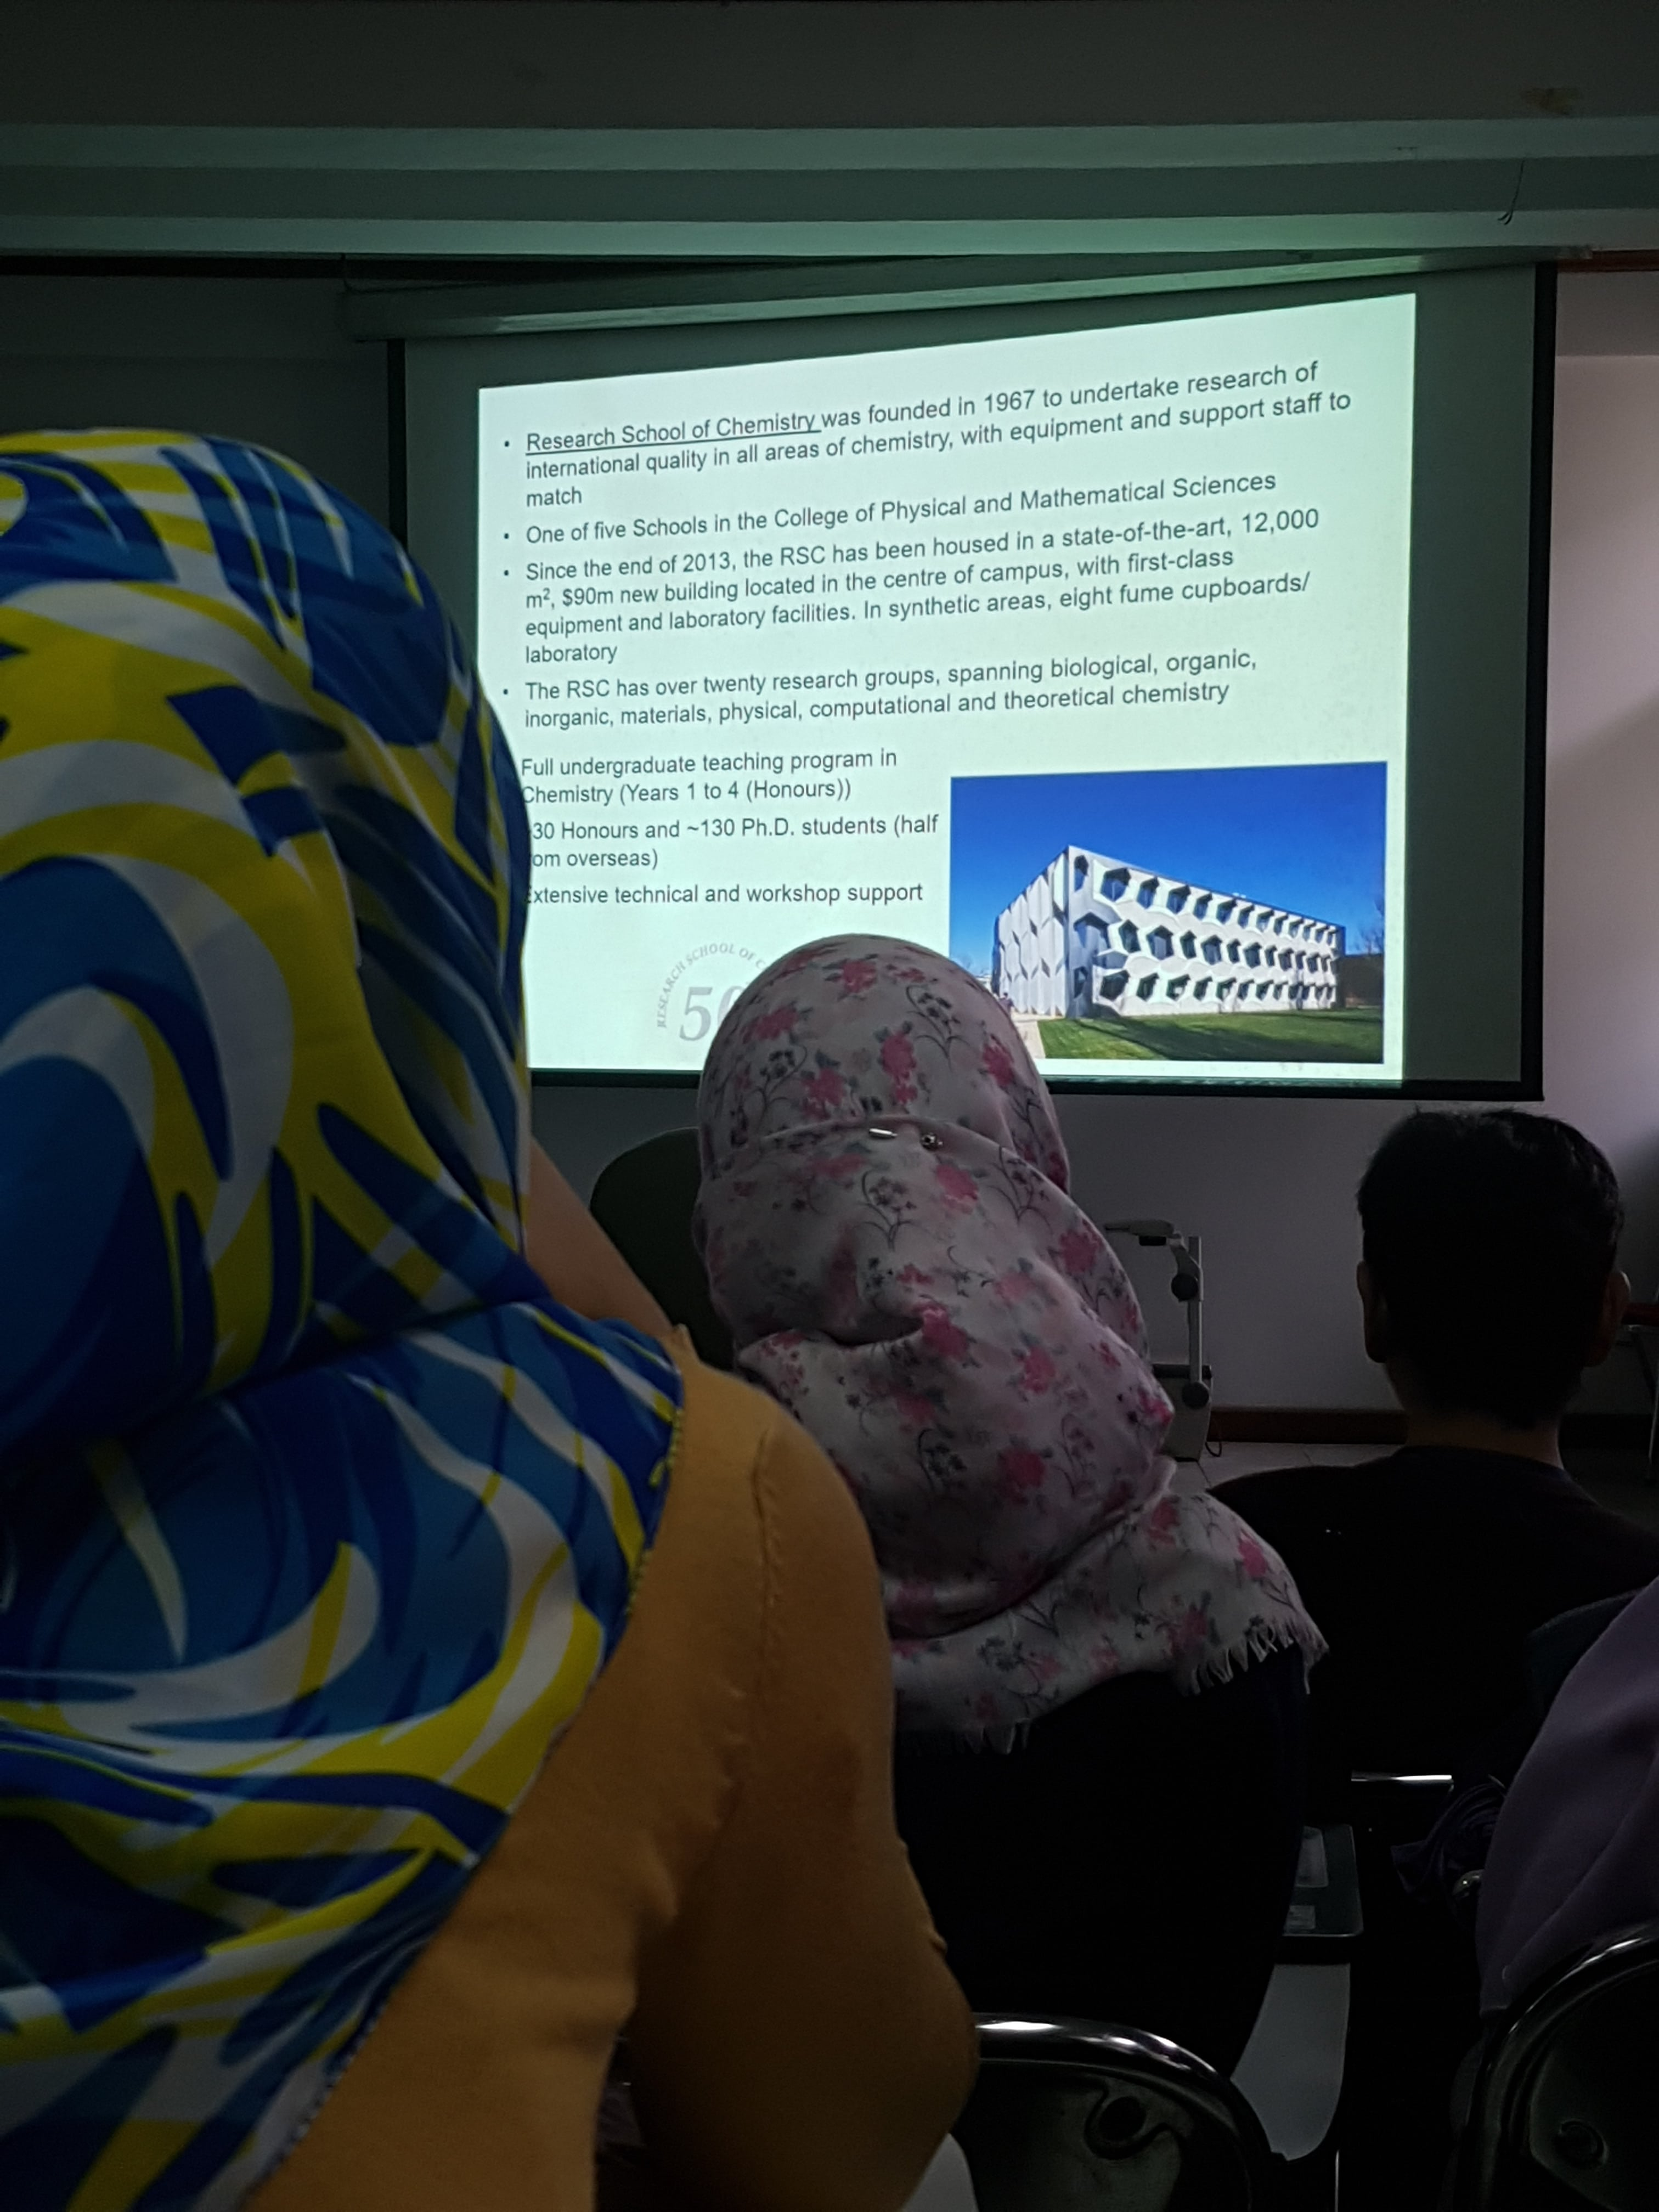 fmipa-itb-held-guest-lecture-commemorating-70th-years-of-chemistry-education